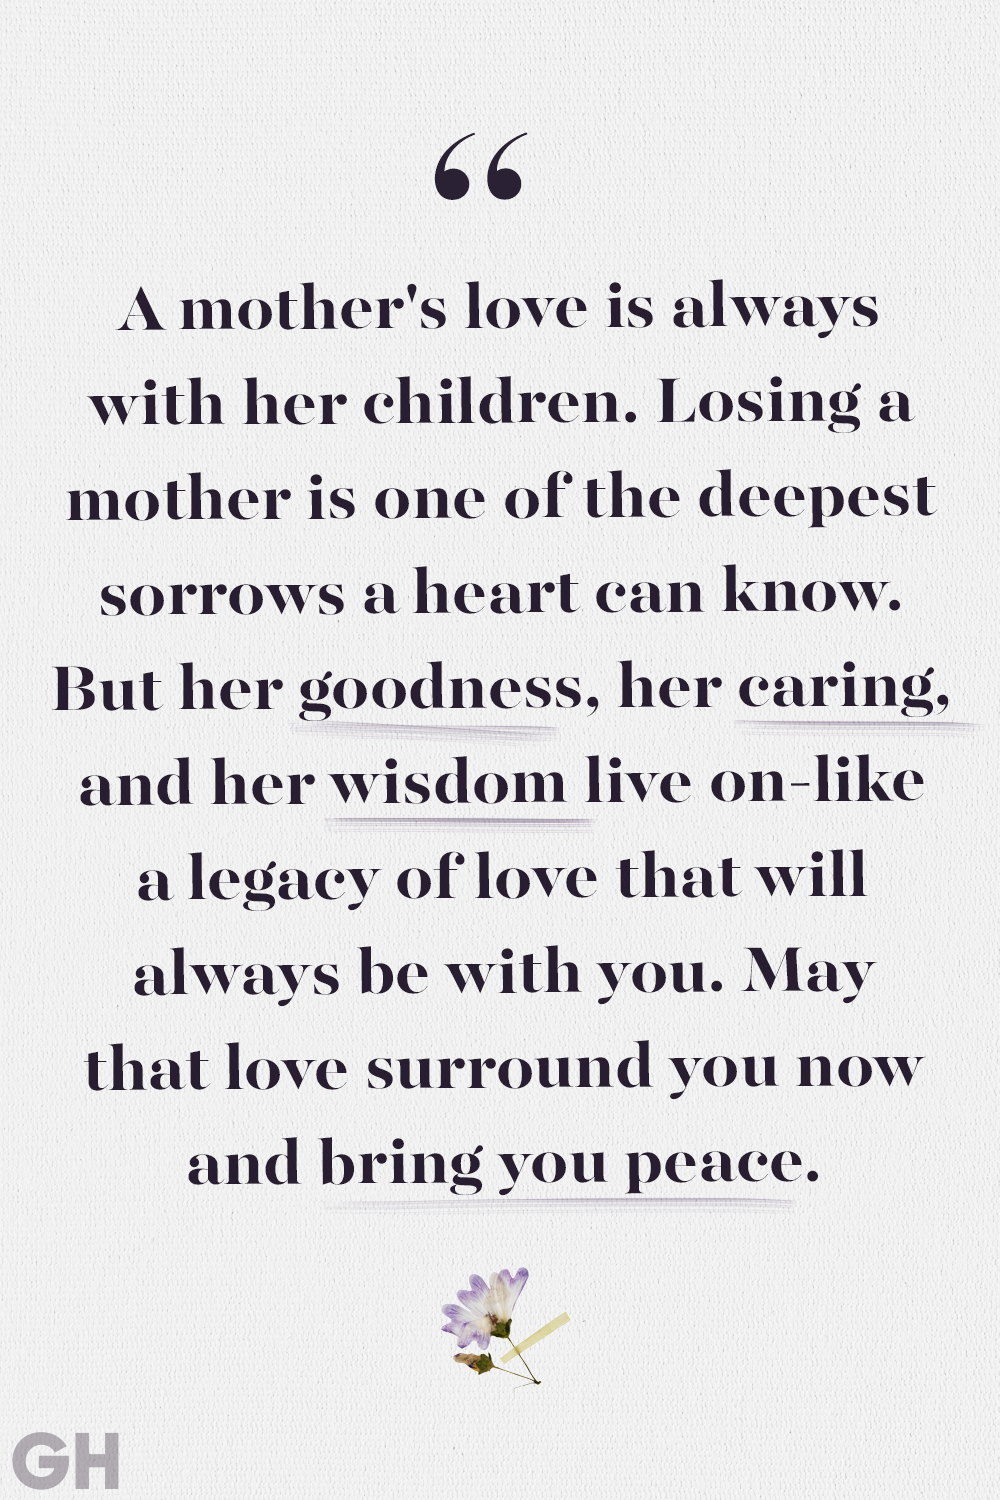 17 Comforting Loss of Mother Quotes - Quotes to Remember Moms Who